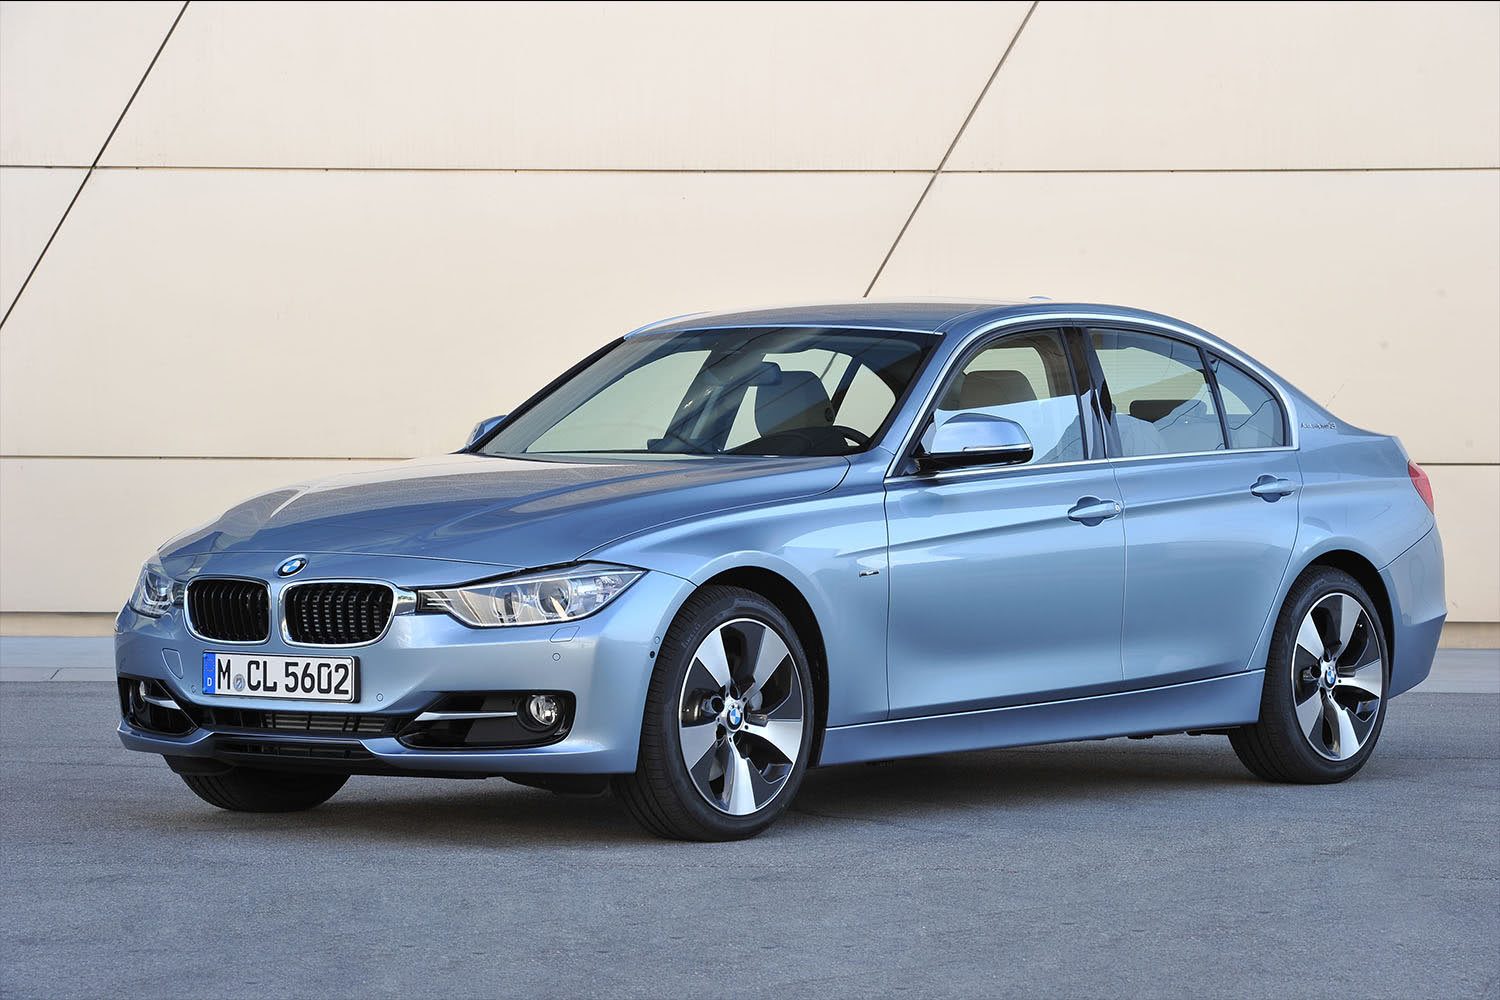 2015-BMW-3-Series-Hybrid-Sedan-Front-Quarter-1500x1000